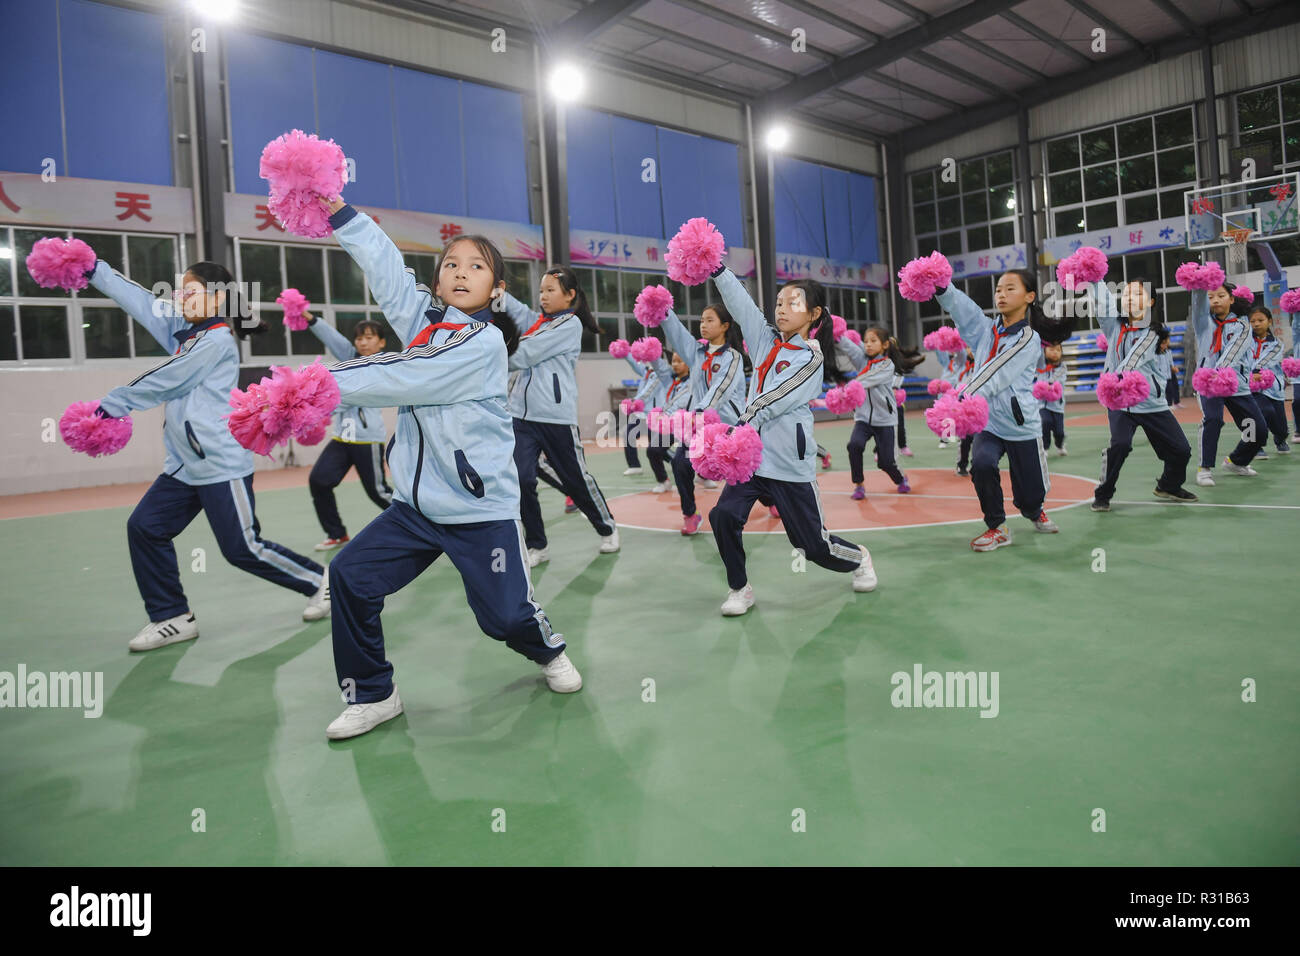 Shishi, China's Fujian Province. 20th Nov, 2018. Students attend cheerleading gymnastics class at Jinfeng experimental school at Shishi City, southeast China's Fujian Province, Nov. 20, 2018. More than 40 schools provide extracurricular training for students whose parents are still at work when school is over in Shishi. Credit: Song Weiwei/Xinhua/Alamy Live News - Stock Image